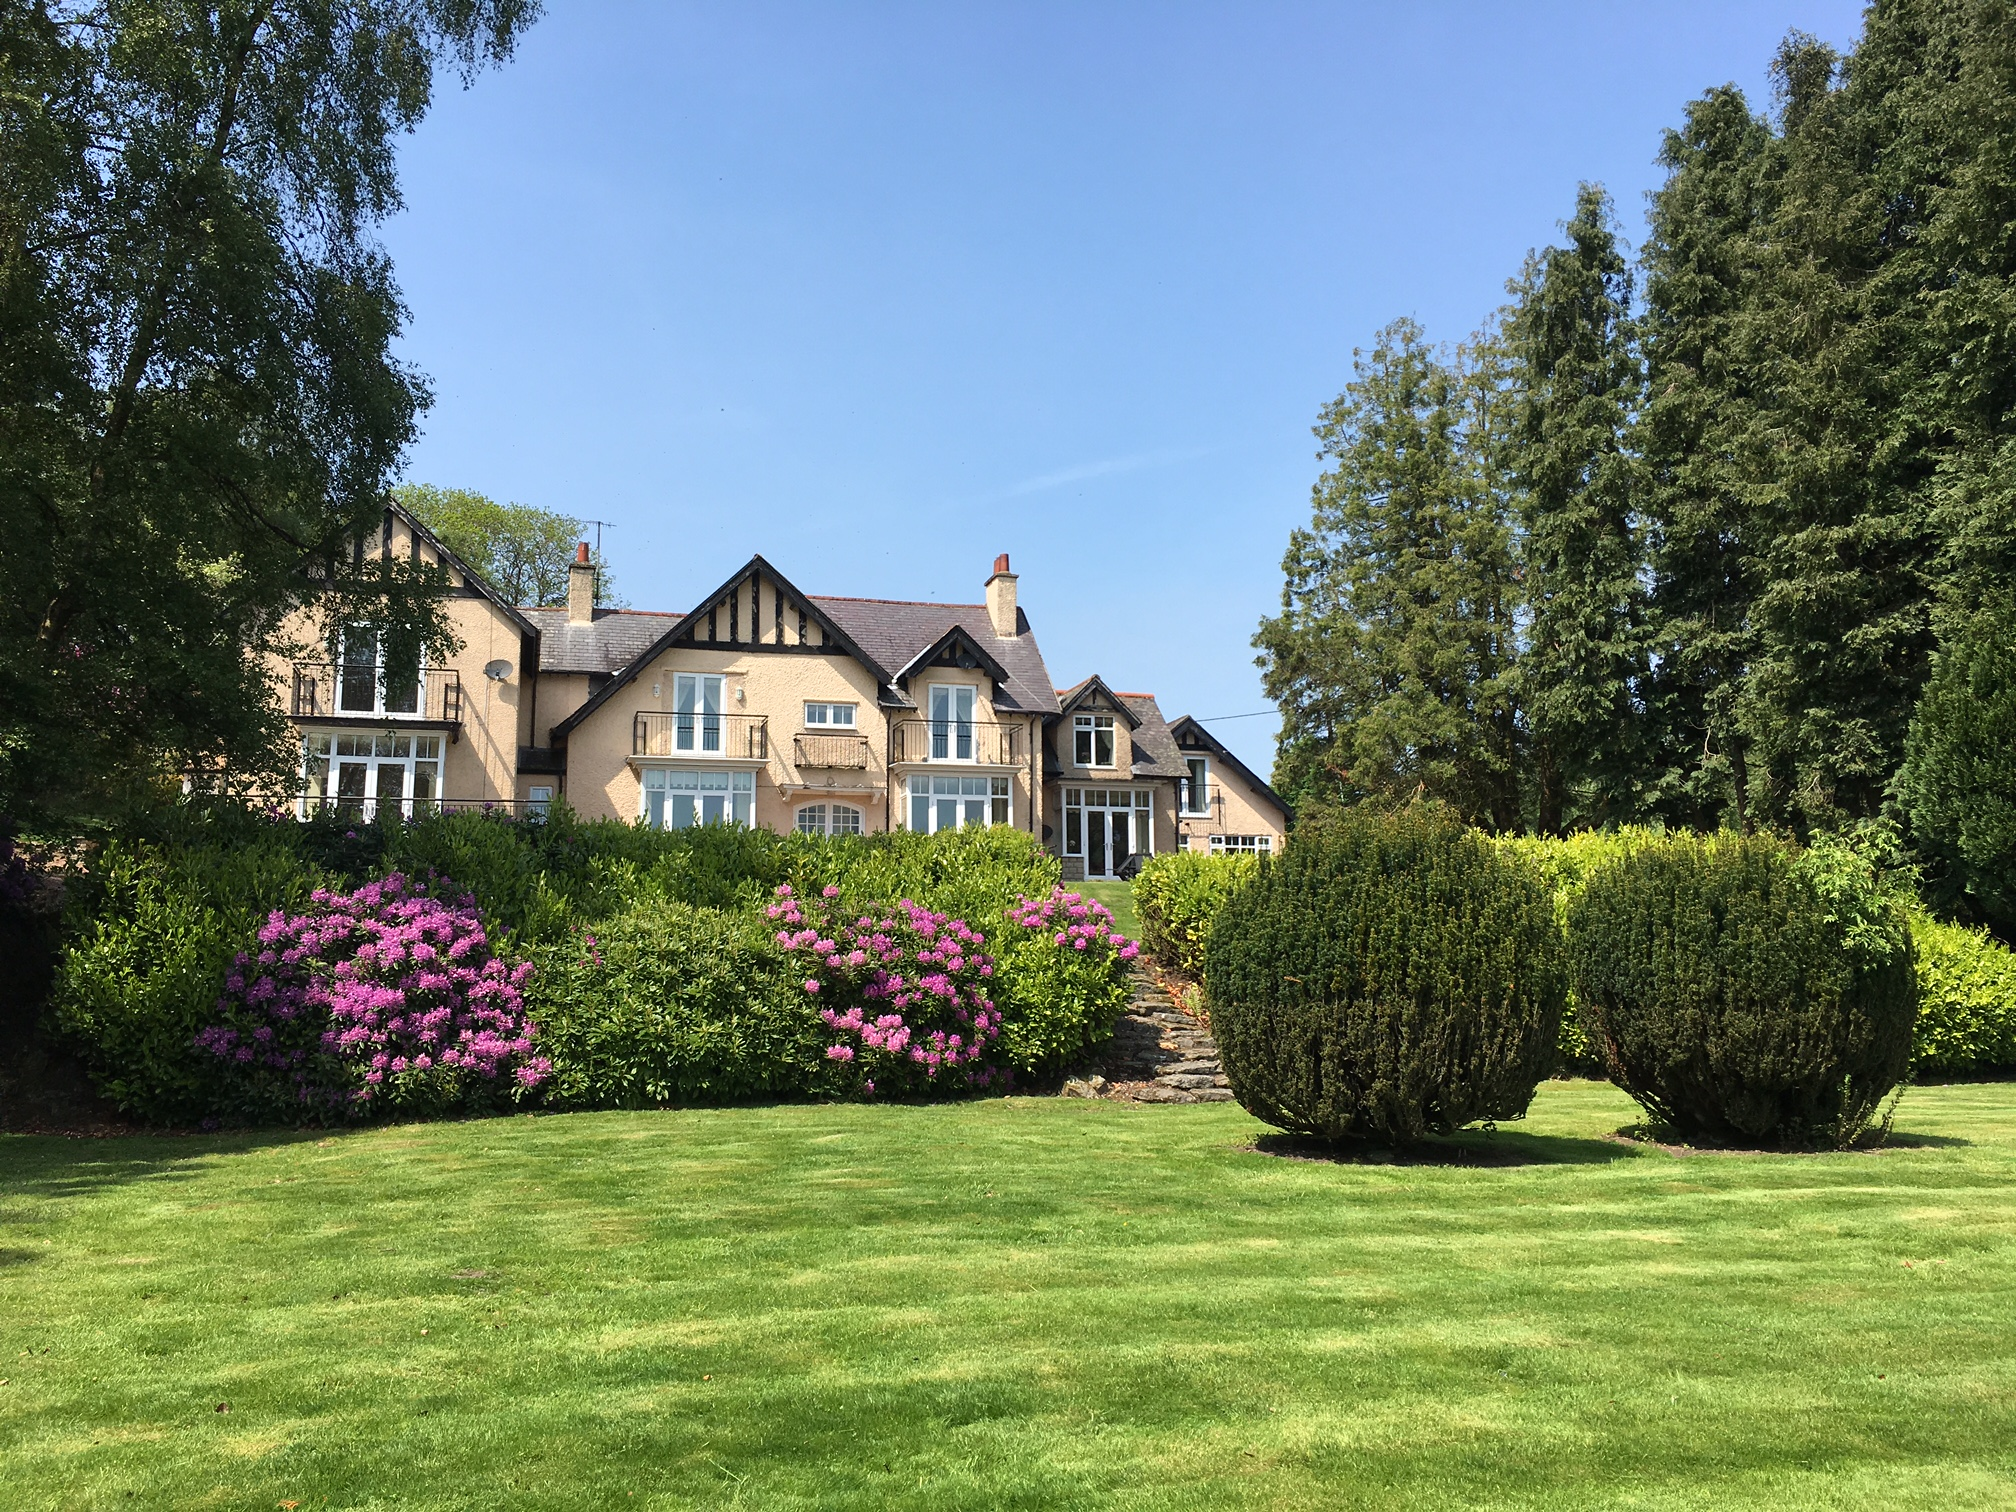 Cheviot View at Westcliffe House – Westcliffe House in Rothbury